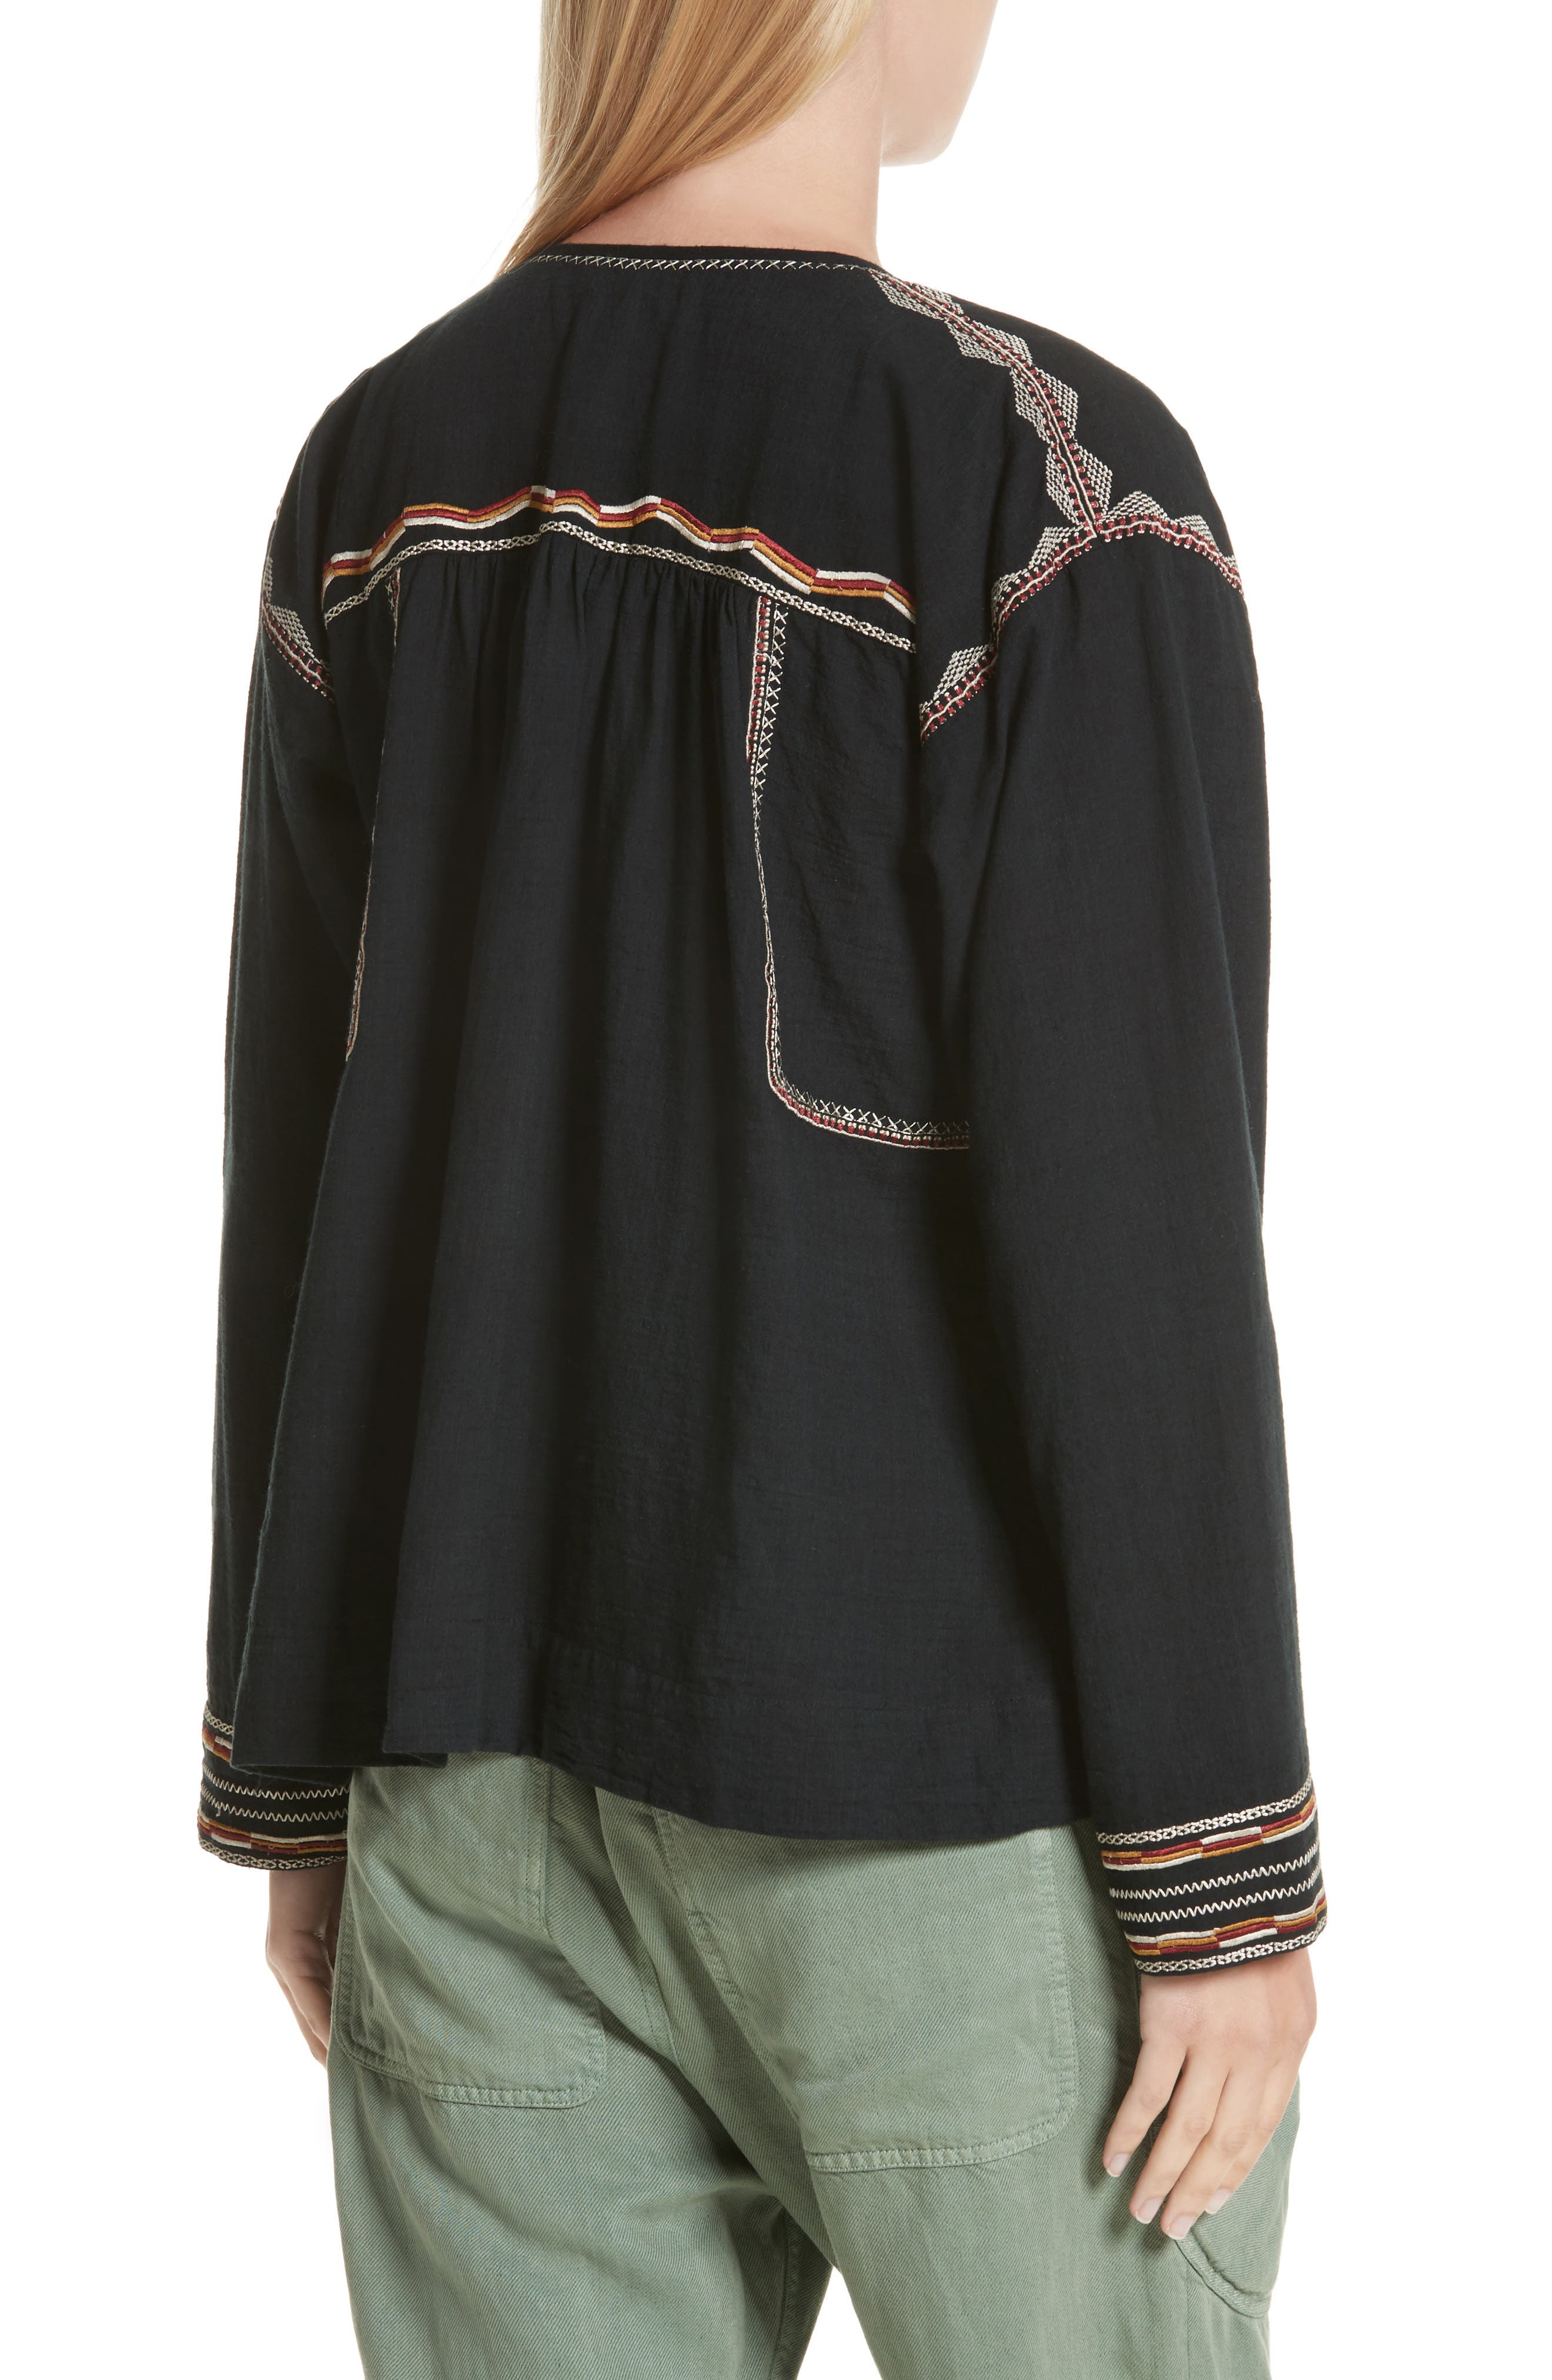 Isabel Marant Étoile Blicky Embroidered Top,                             Alternate thumbnail 2, color,                             Black